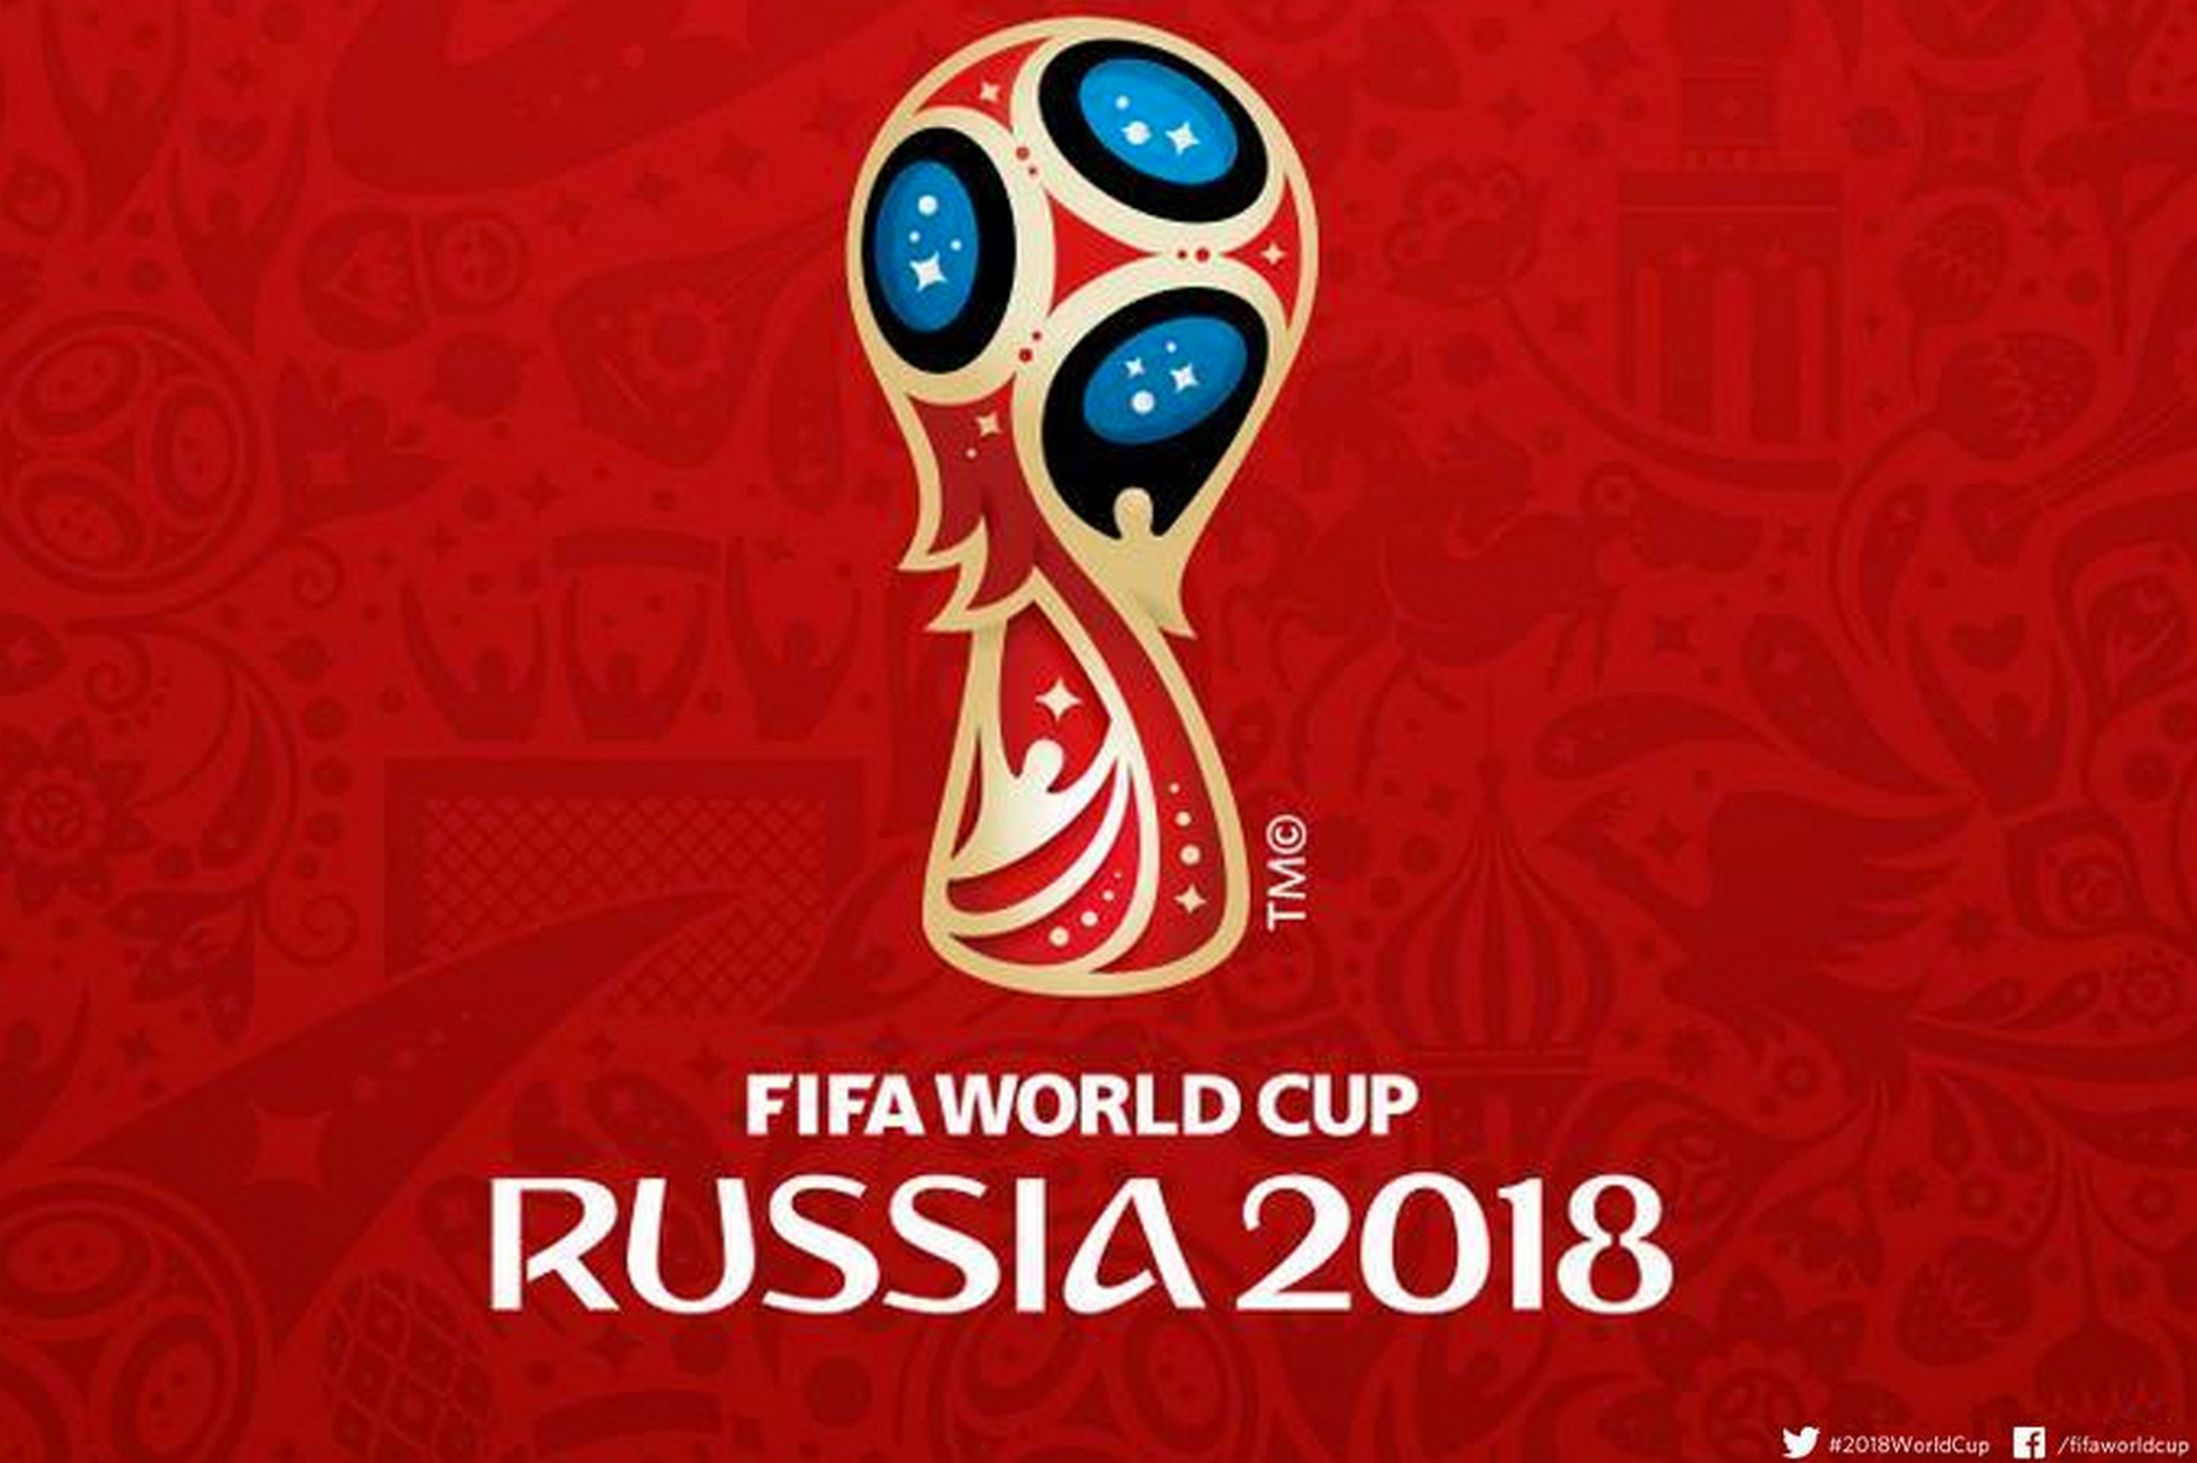 World-Cup-2018-logo.jpg